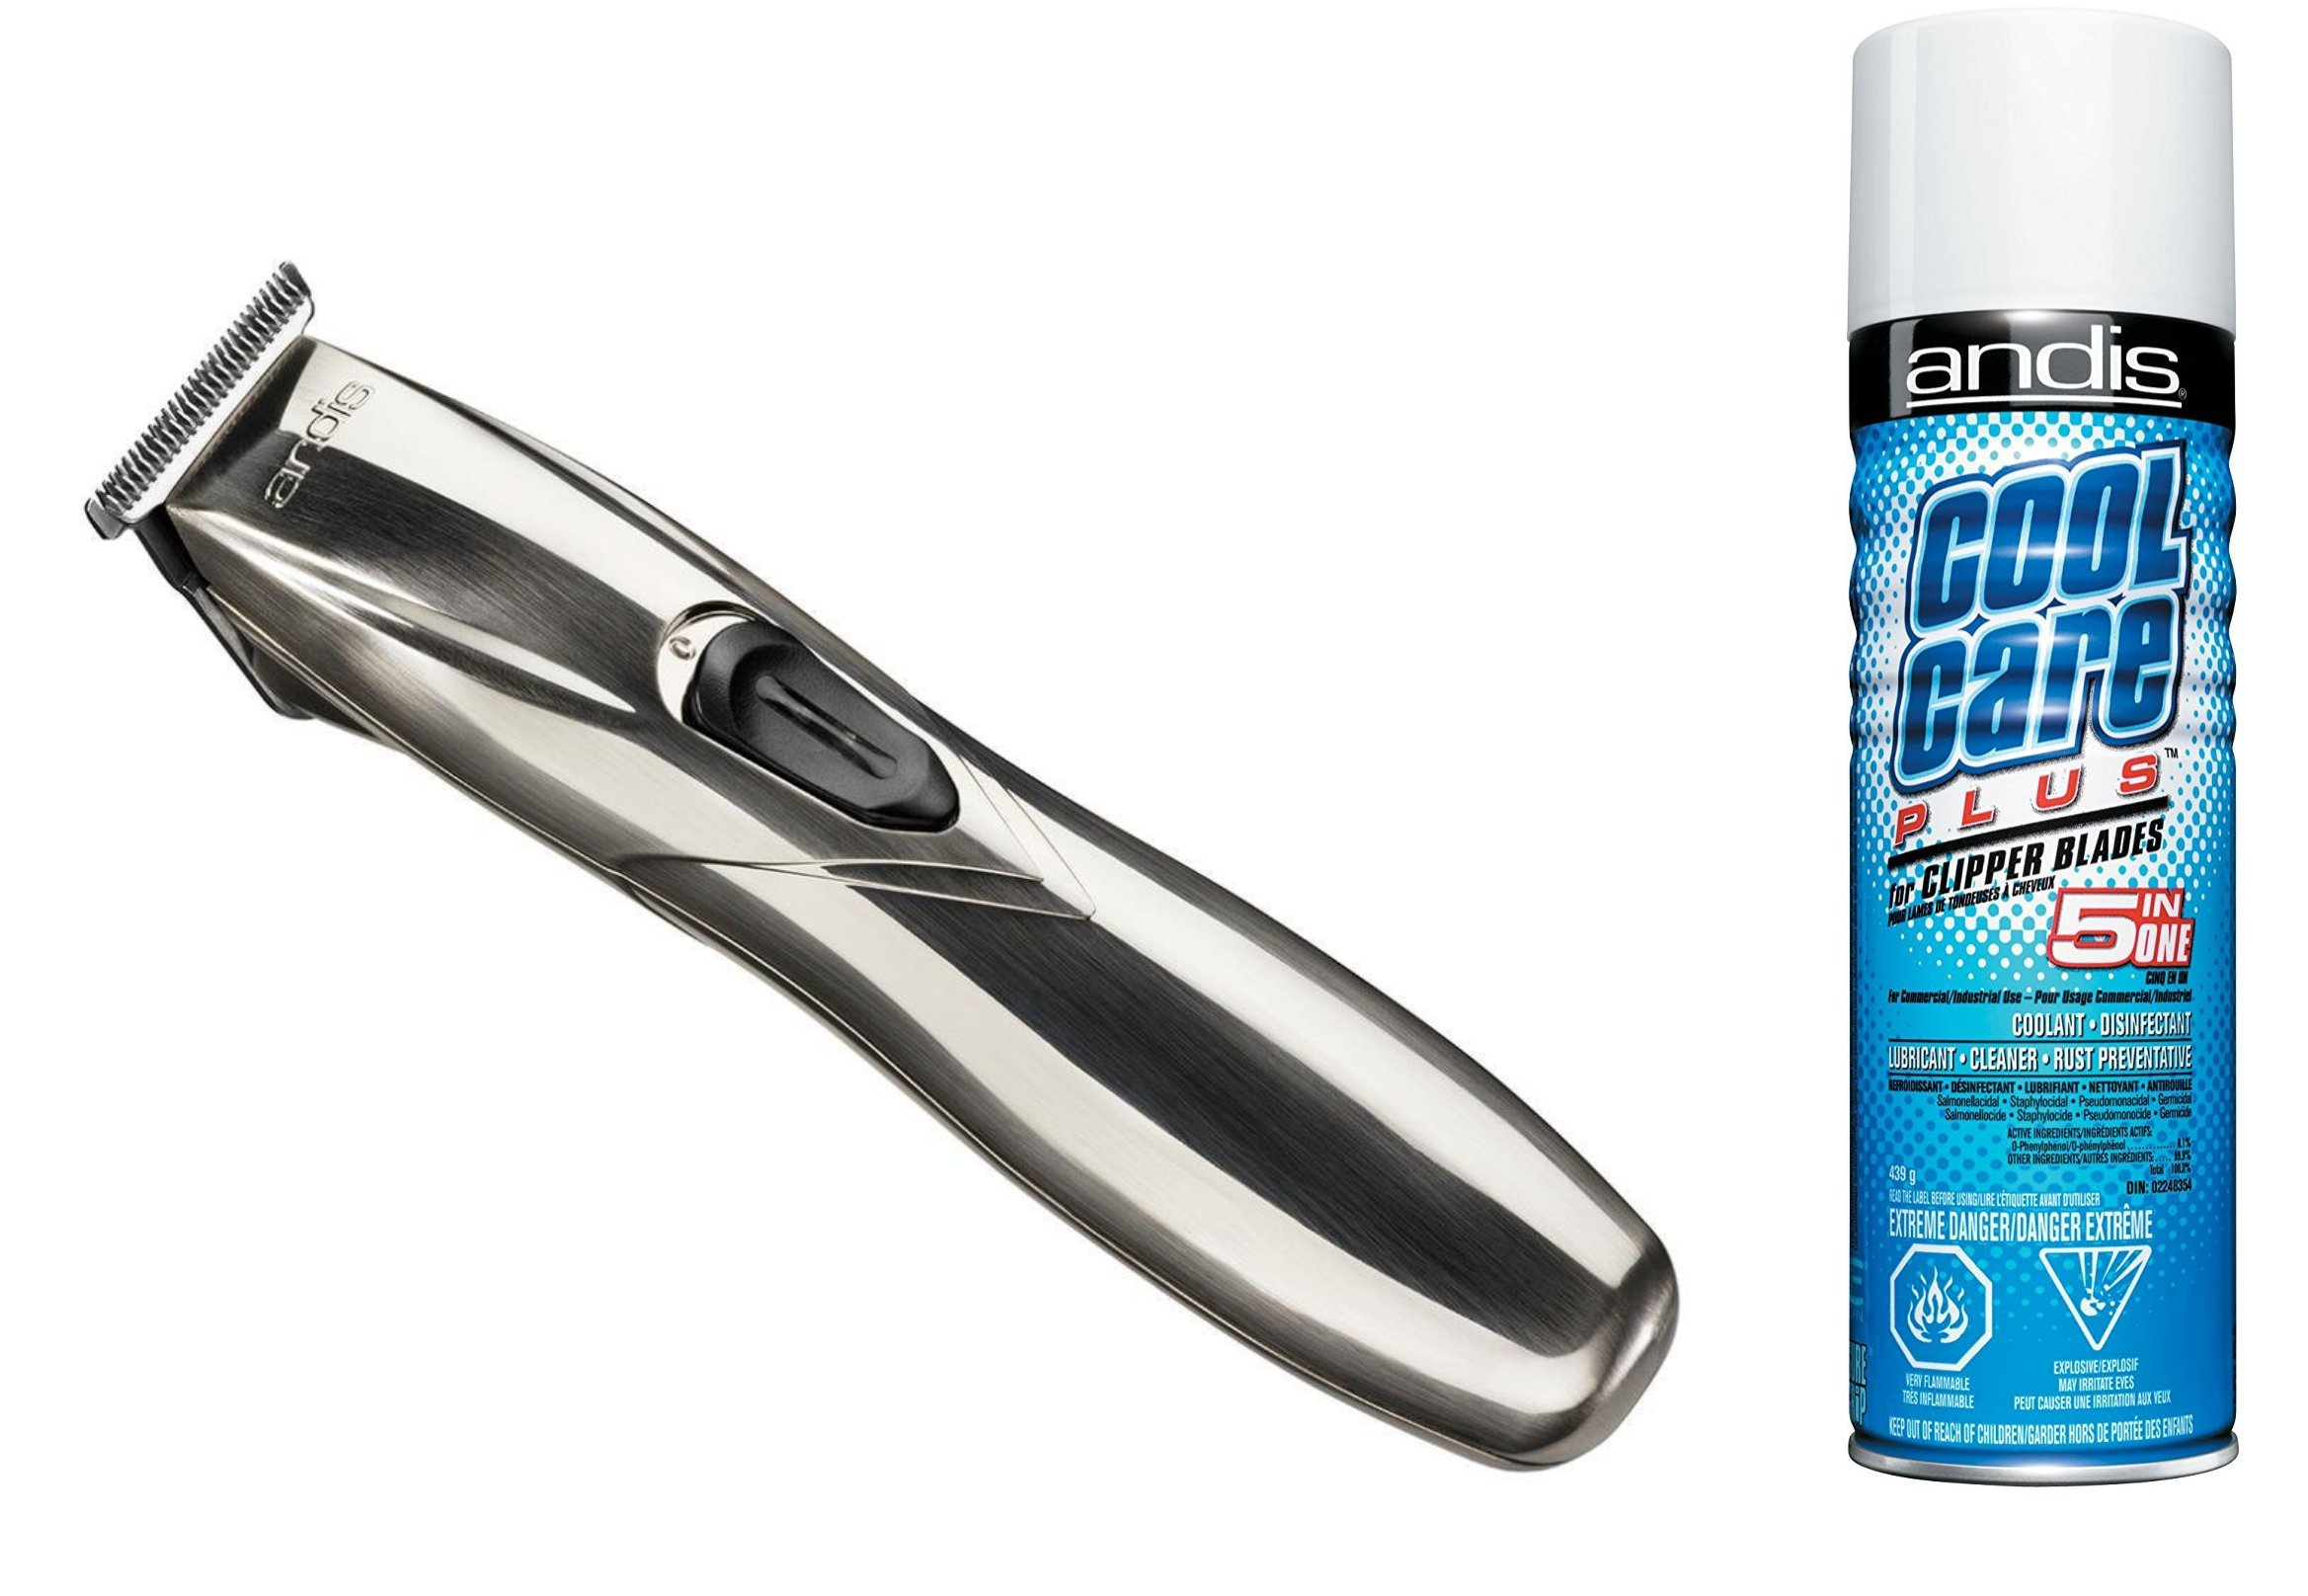 Andis PowerTrim T-BLADE CORDLESS Mens Hair Trimmer with BONUS FREE Andis Cool Care Plus Clipper Blade Cleaner Included